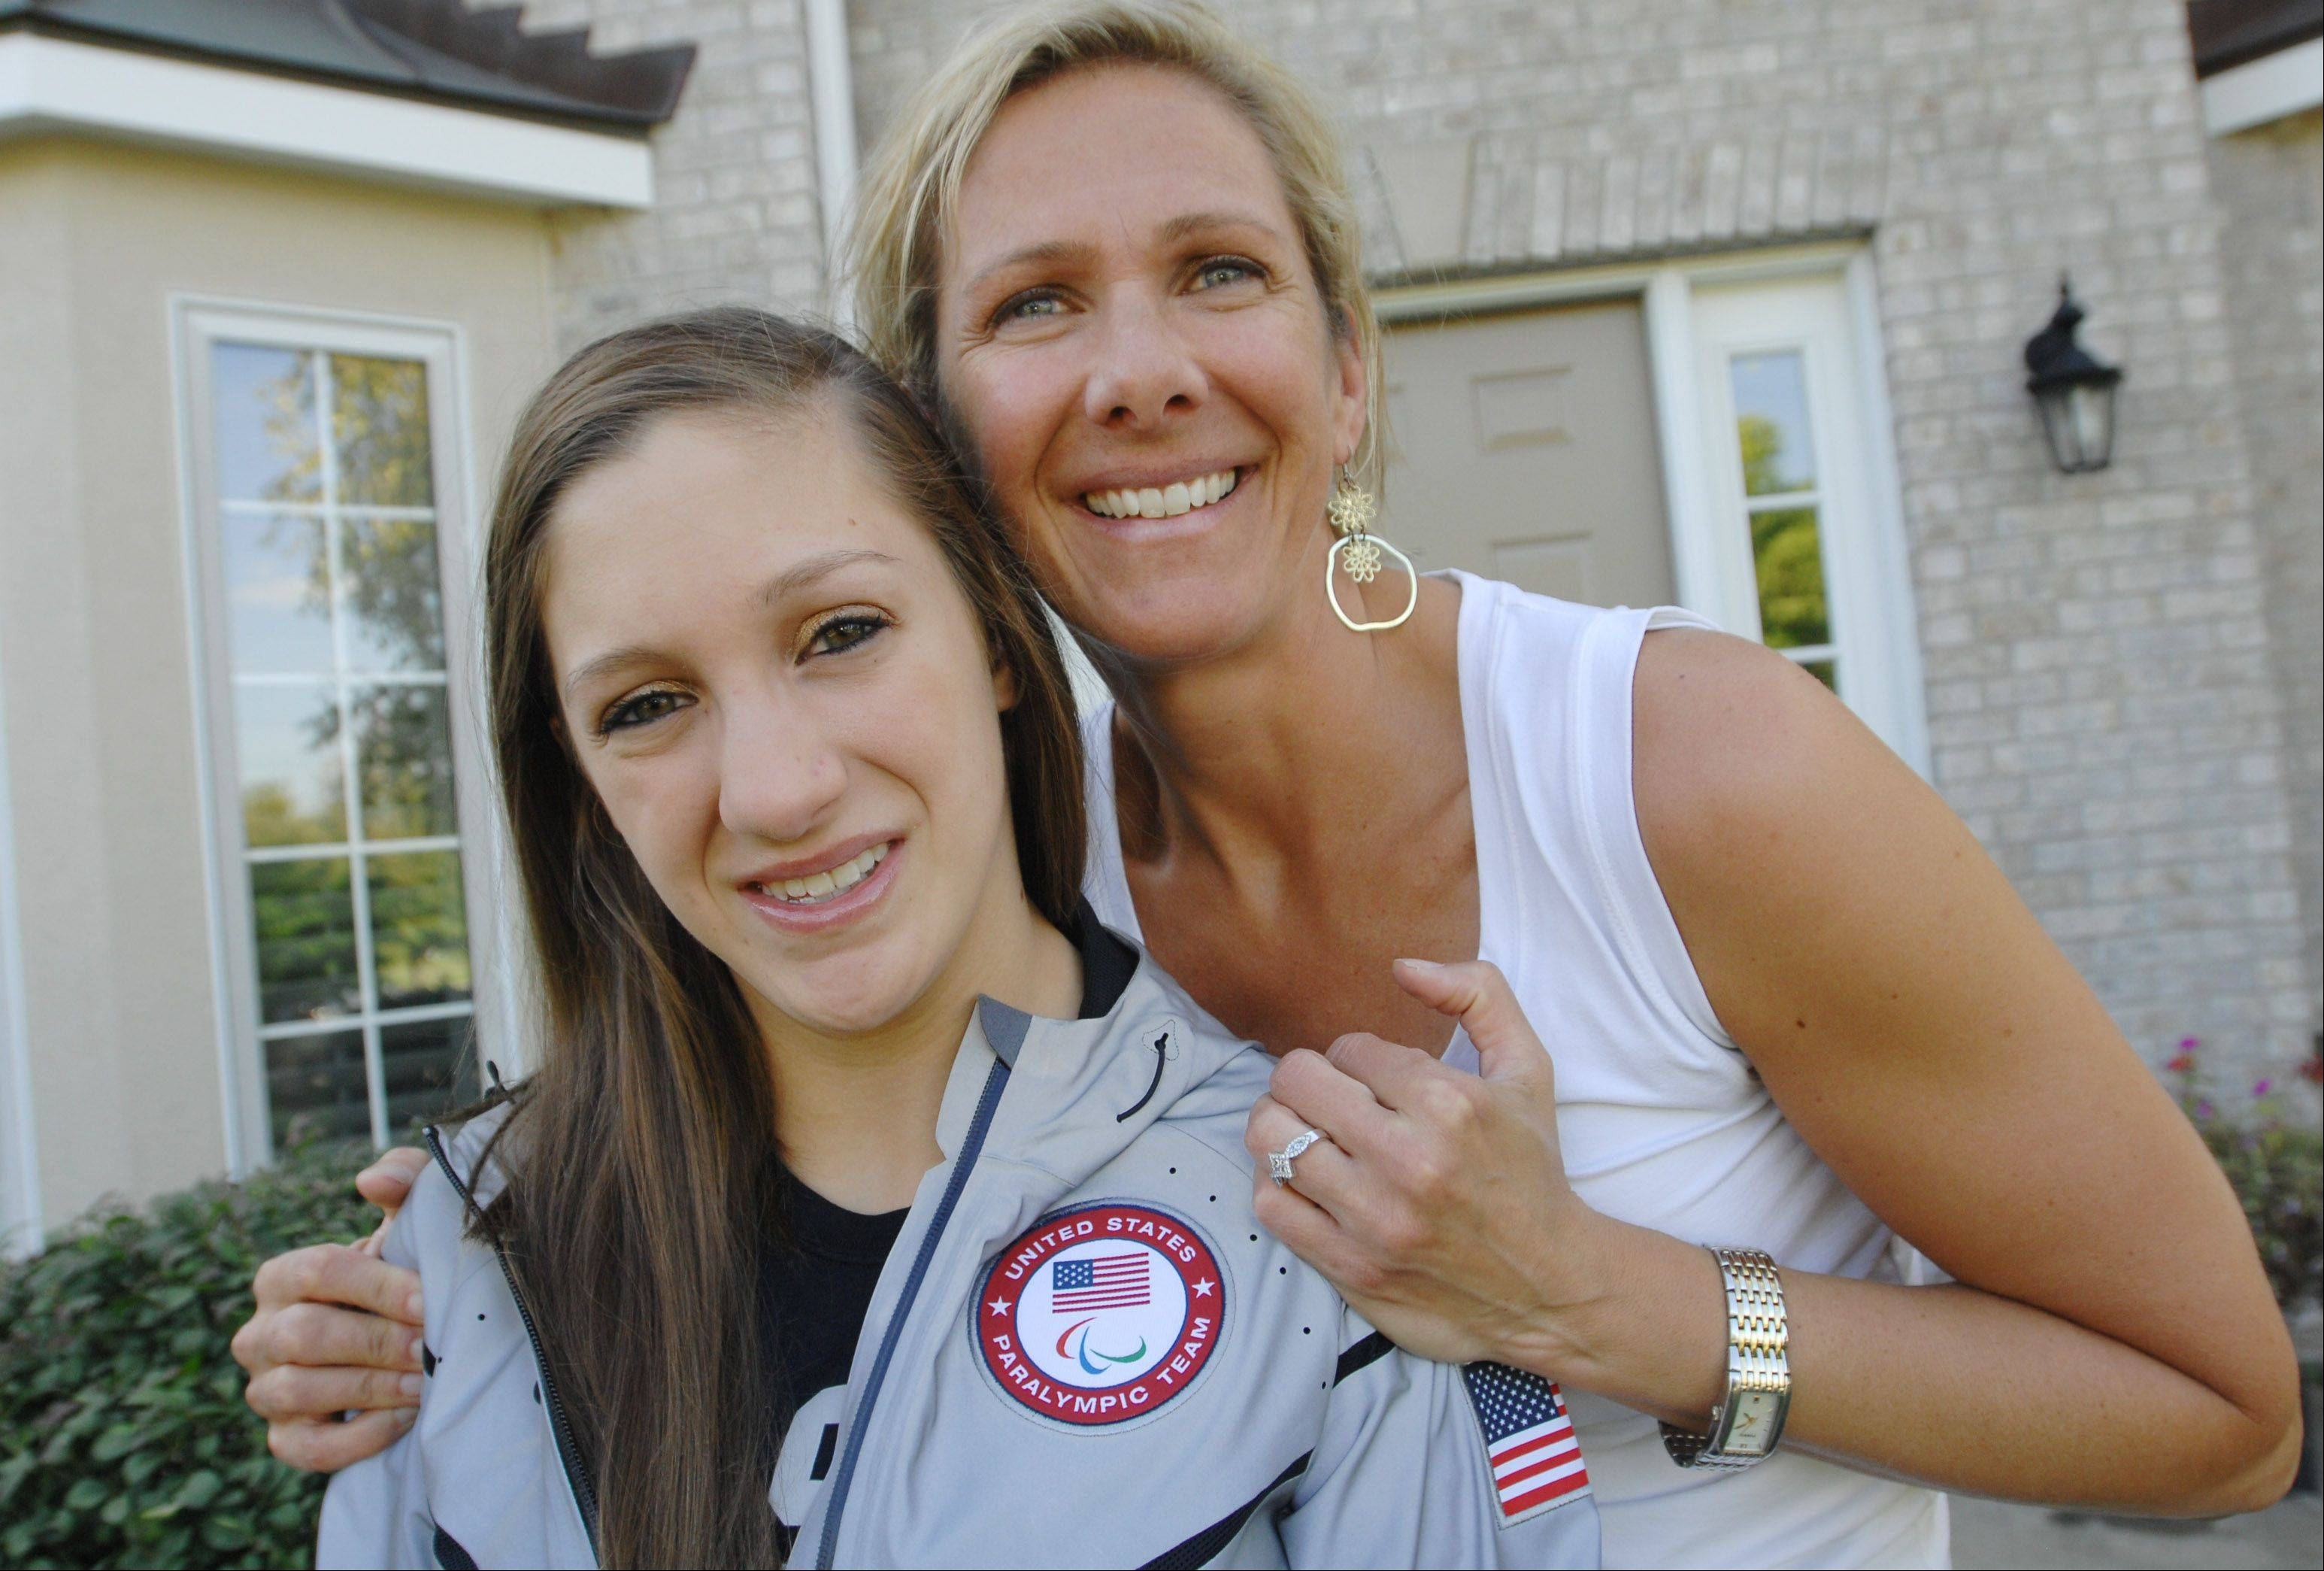 Paralympian swimmer Alyssa Gialamas sports her podium jacket from the 2012 London Games with her mother, Lisa, at their Naperville home. Gialamas, 18, recently won a bronze medal at the International Paralympic Committee Swimming World Championships in Montreal, and is training for the 2016 Paralympics in Rio de Janeiro.